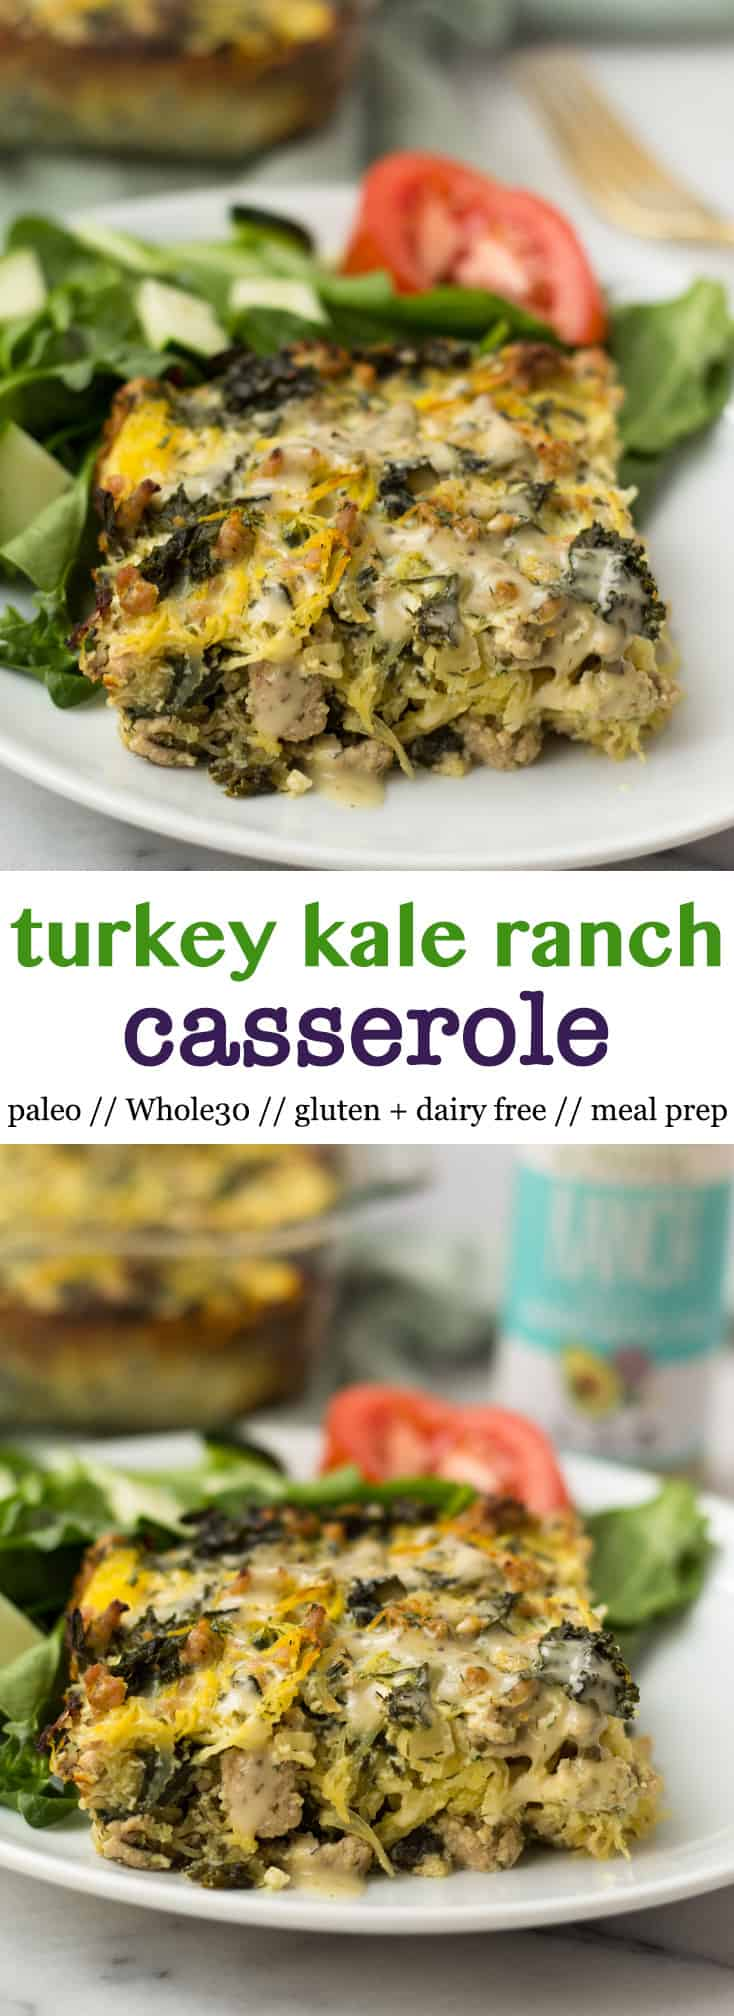 A comforting and hearty dish without the guilt, Turkey Kale Ranch Casserole packs protein & healthy fats, is great for meal prep, & is paleo, gluten & dairy free, & Whole30 approved - Eat the Gains